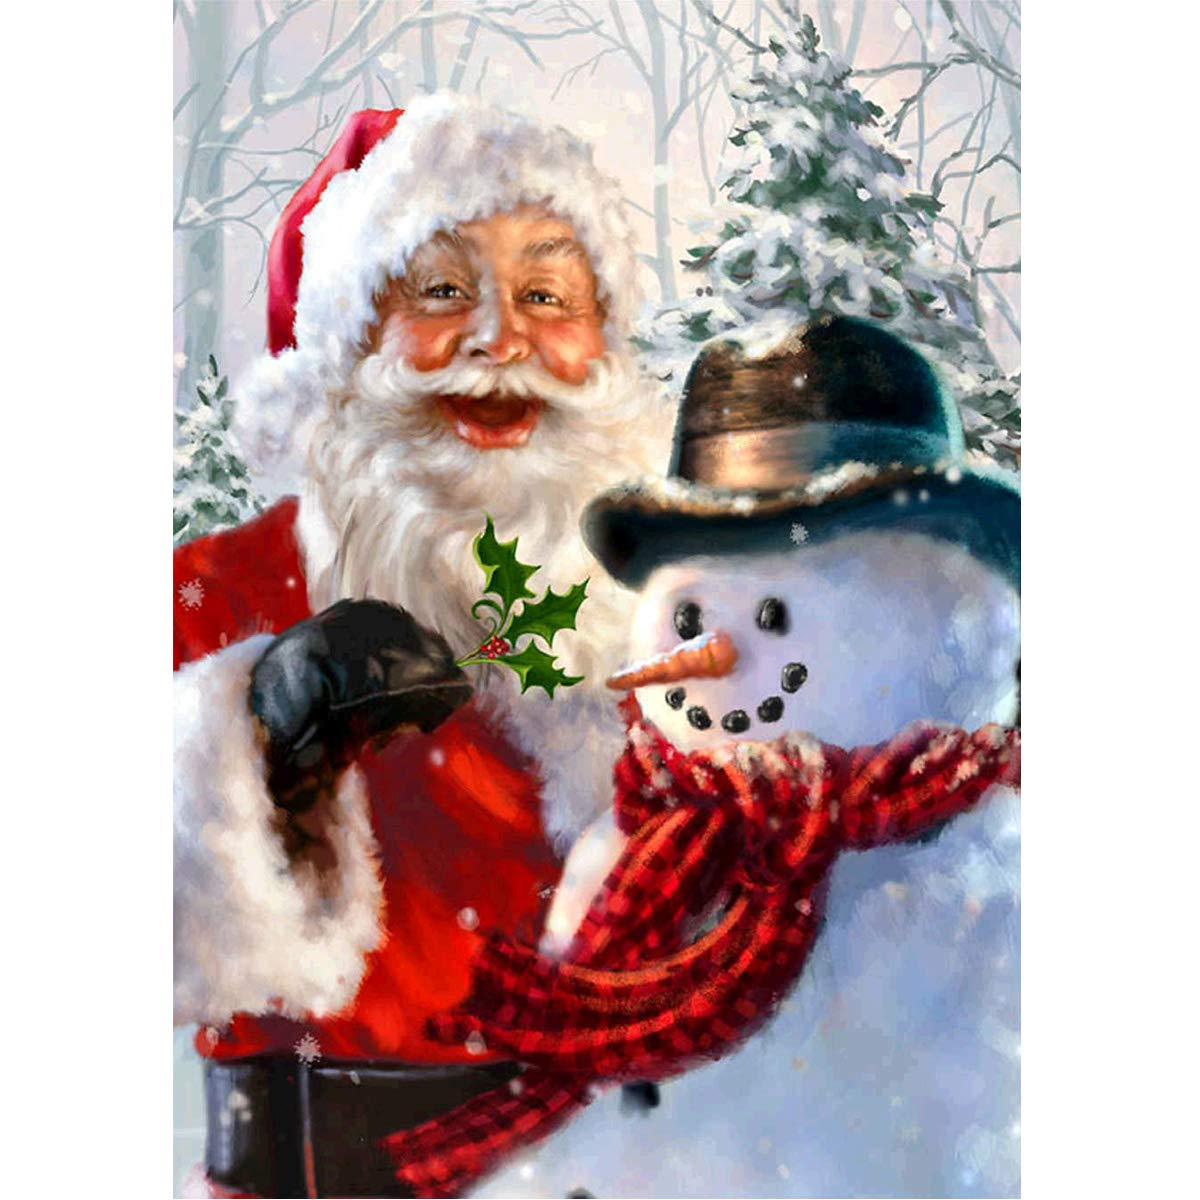 MXJSUA 5D DIY Diamond Painting Kit by Number Full Drill Round Beads Crystal Rhinestone Embroidery Cross Stitch Picture Supplies Arts Craft Wall Sticker Decor 12x16In Santa Claus and Snowman